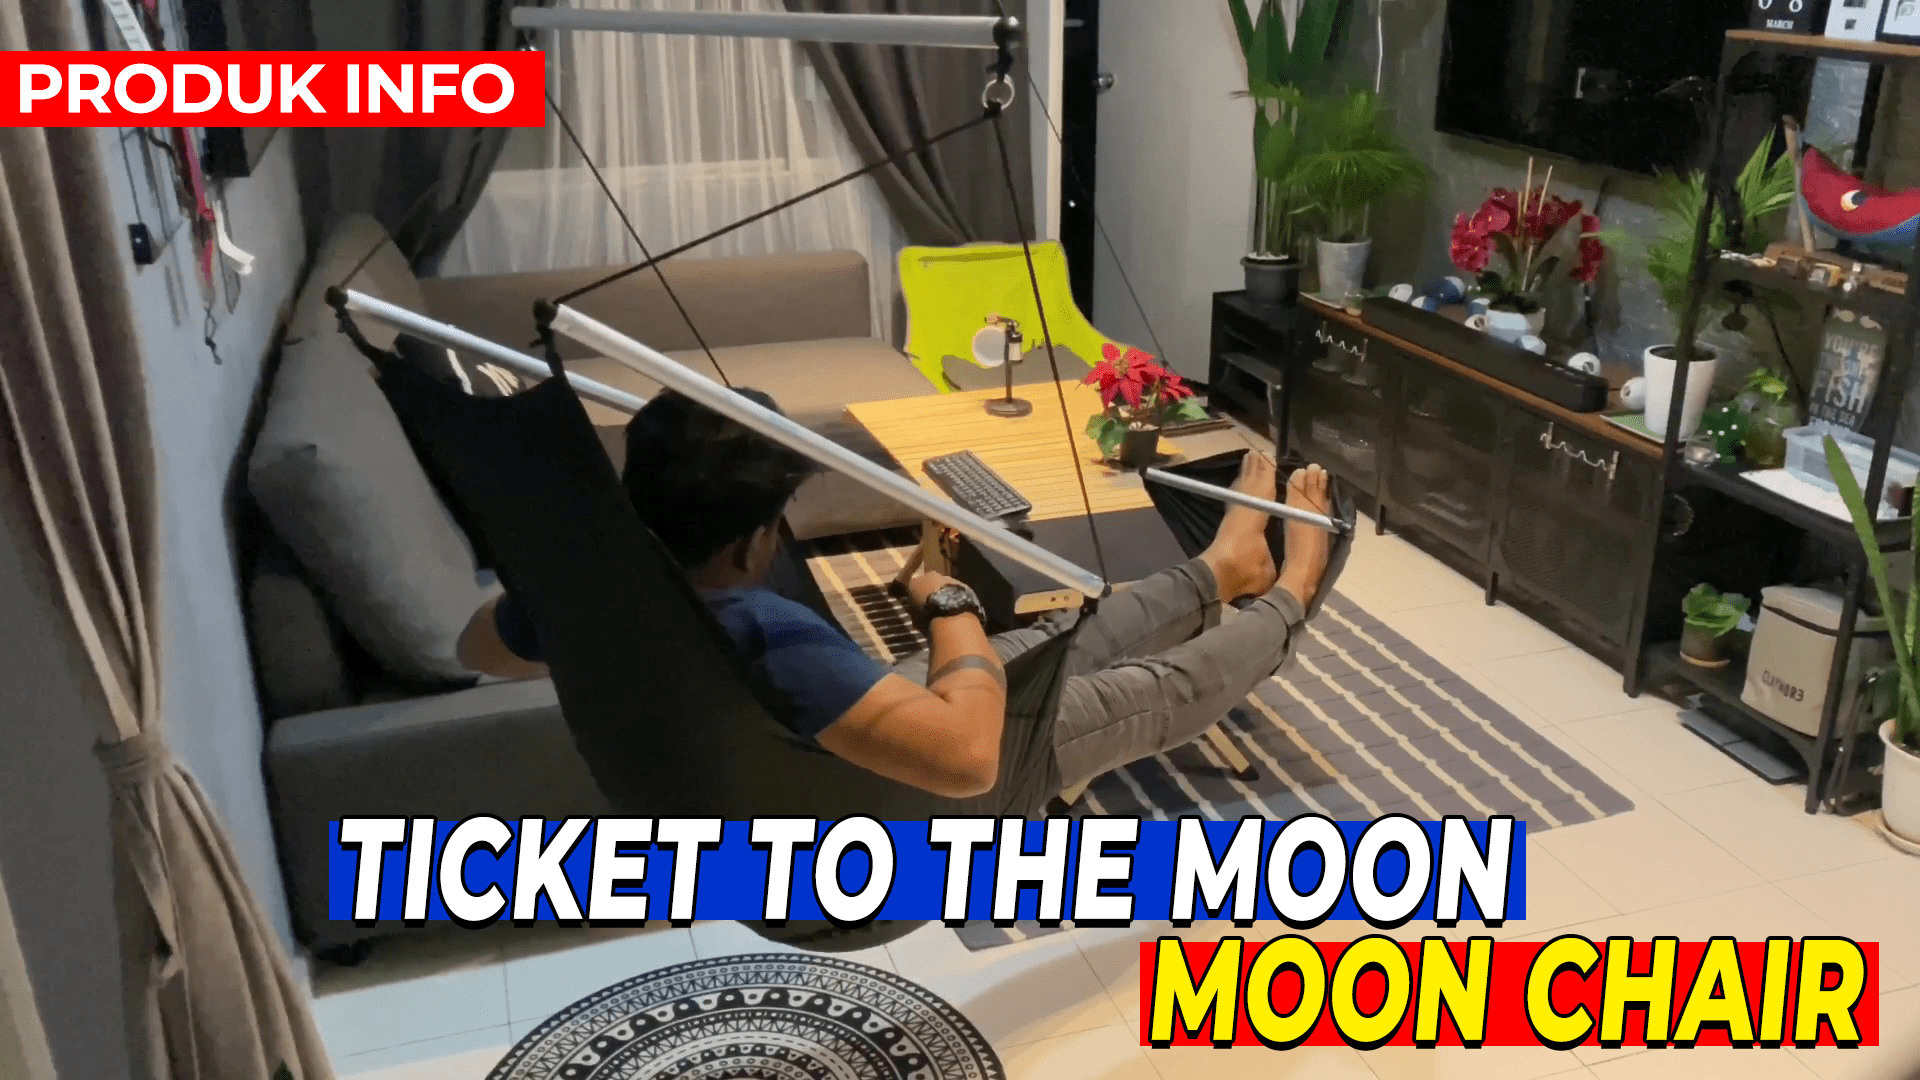 TICKET TO THE MOON - MOON CHAIR